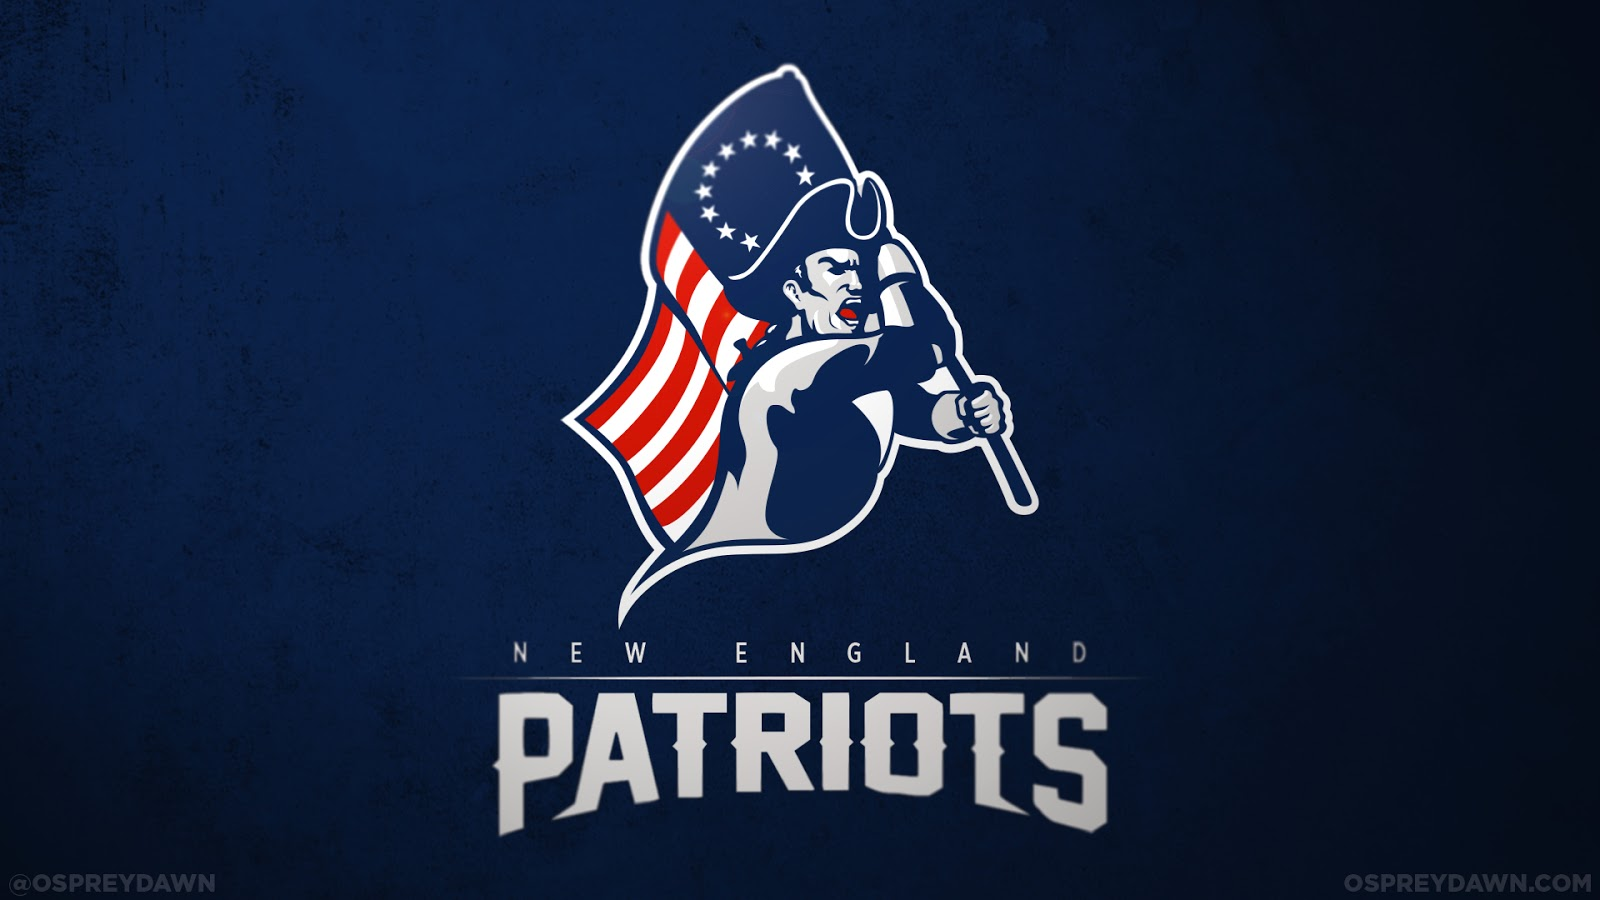 Sport Wallpaper New England Patriots: Max O'Brien's NFL Logo Redesigns